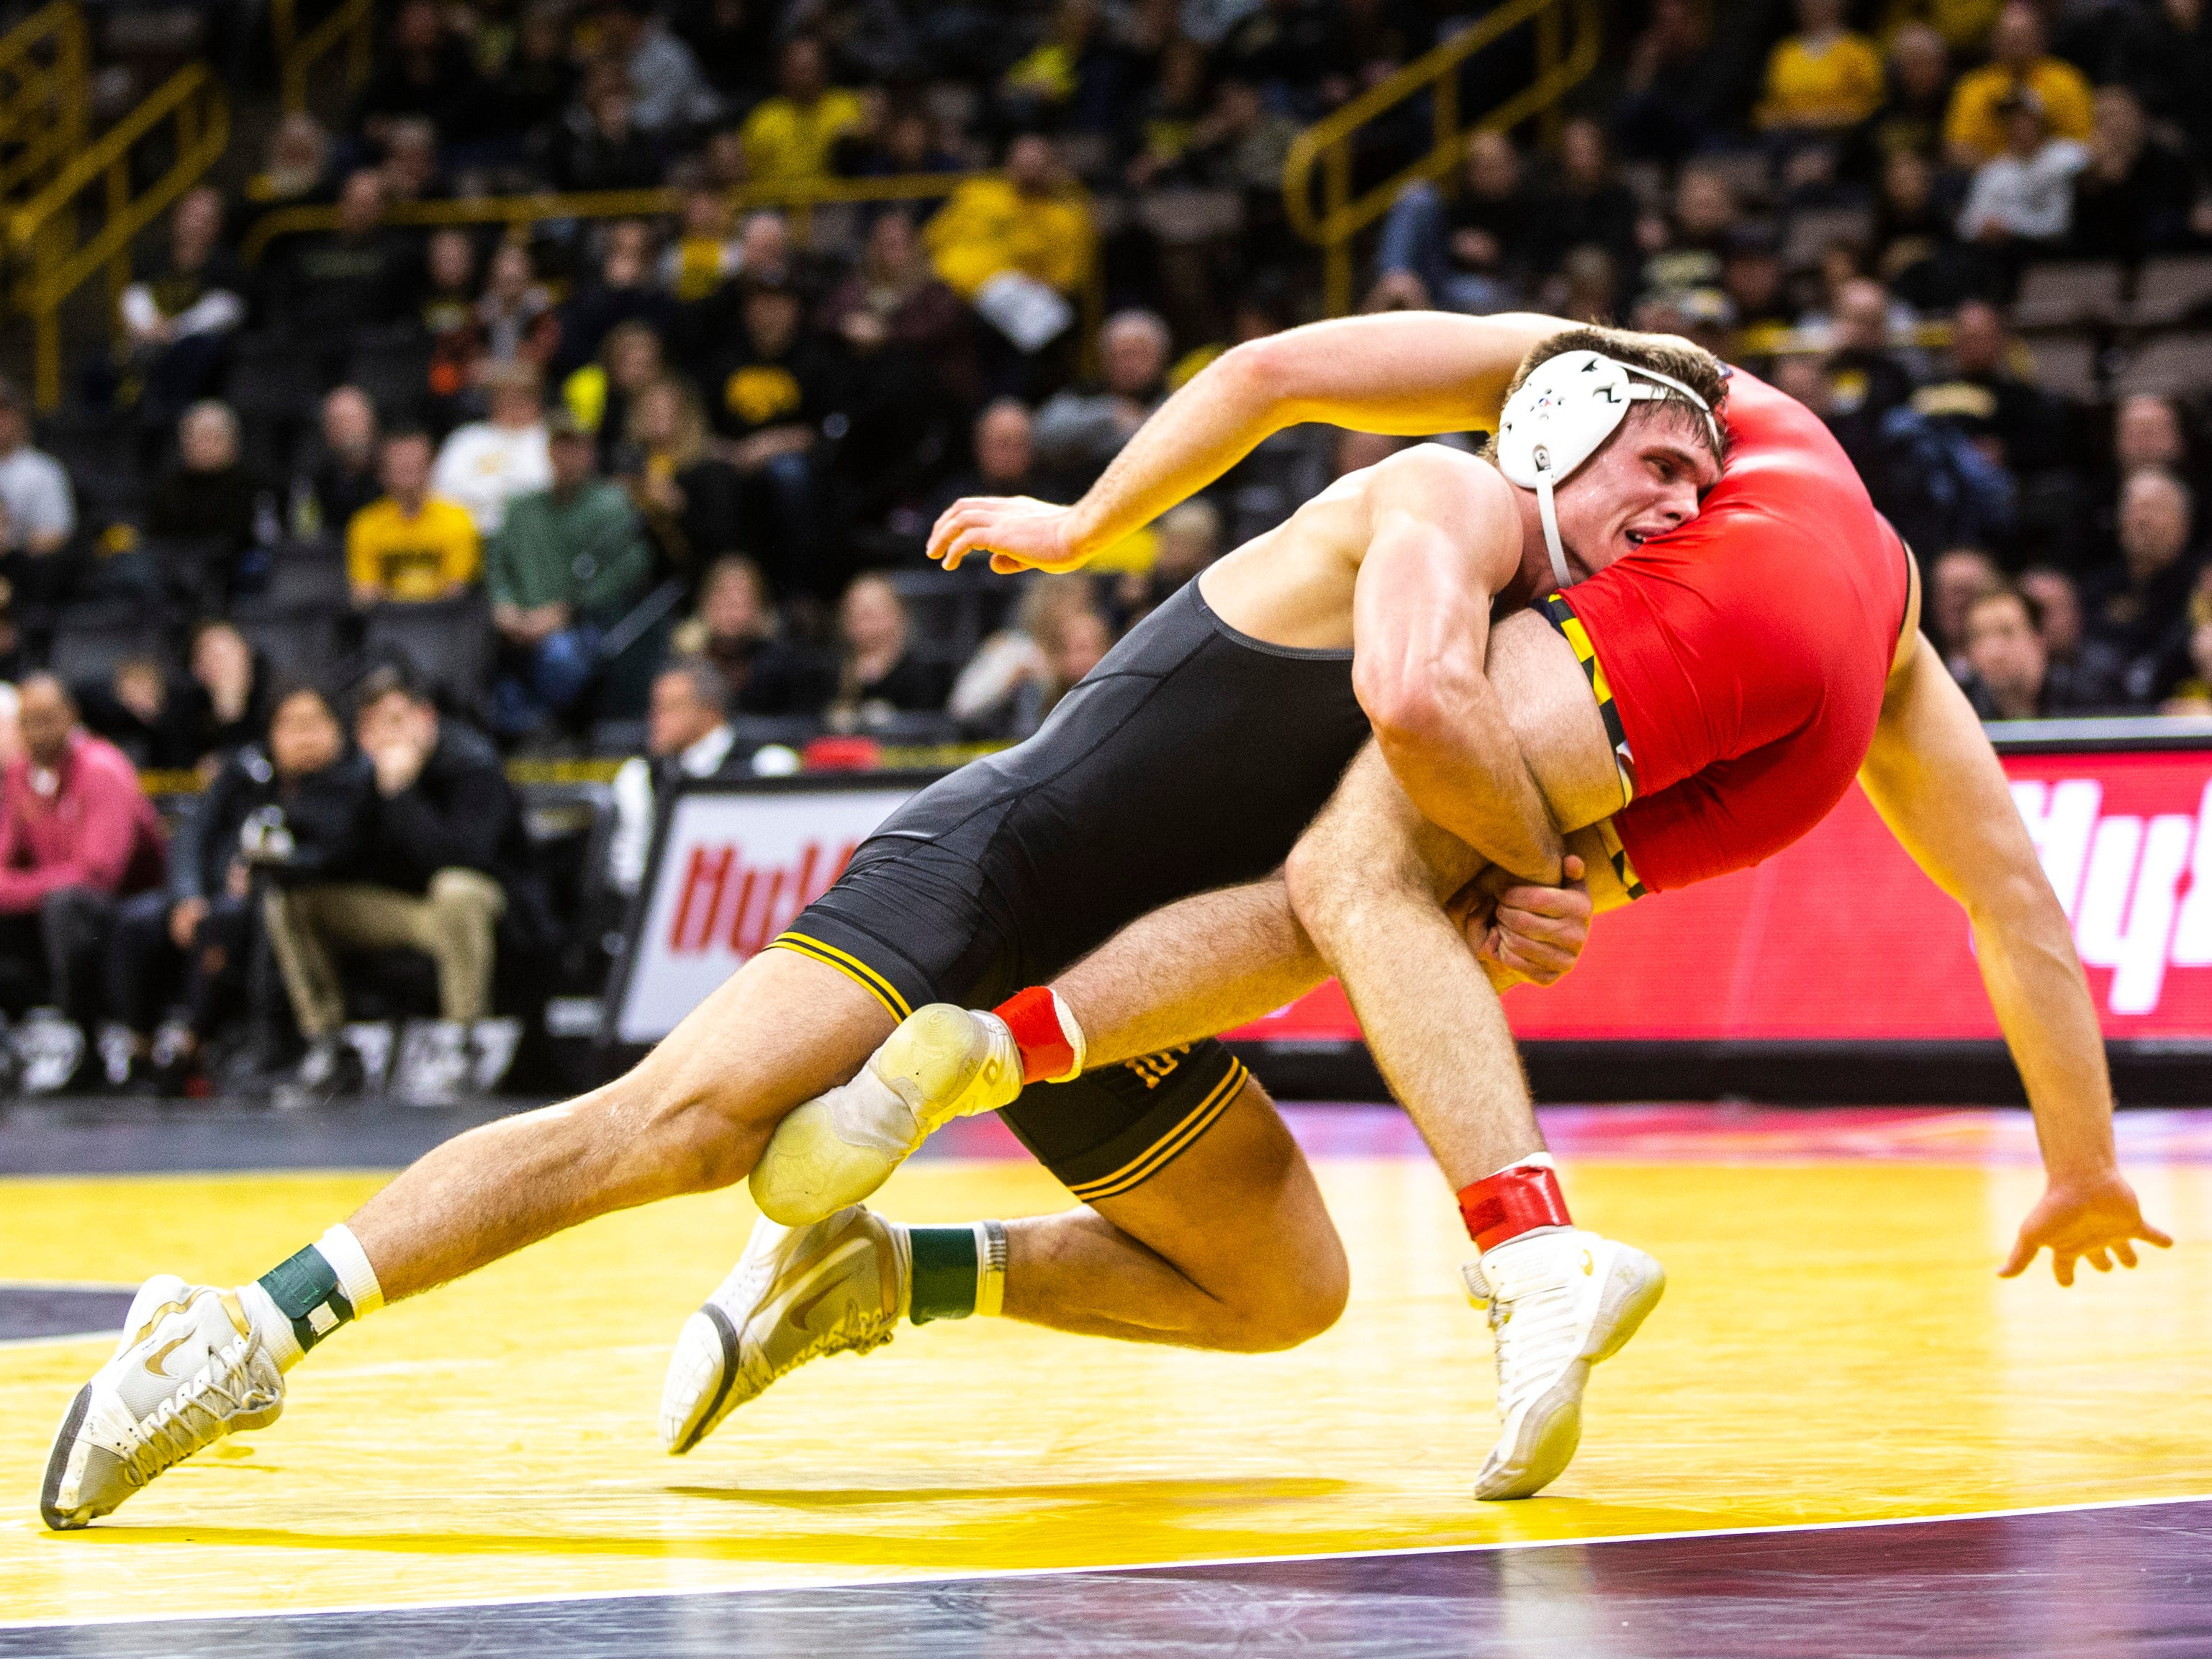 Iowa's Cash Wilcke, left, scores a takedown on Maryland's Kyle Jasenski at 184 during a NCAA Big Ten Conference wrestling dual on Friday, Feb. 8, 2019 at Carver-Hawkeye Arena in Iowa City, Iowa.